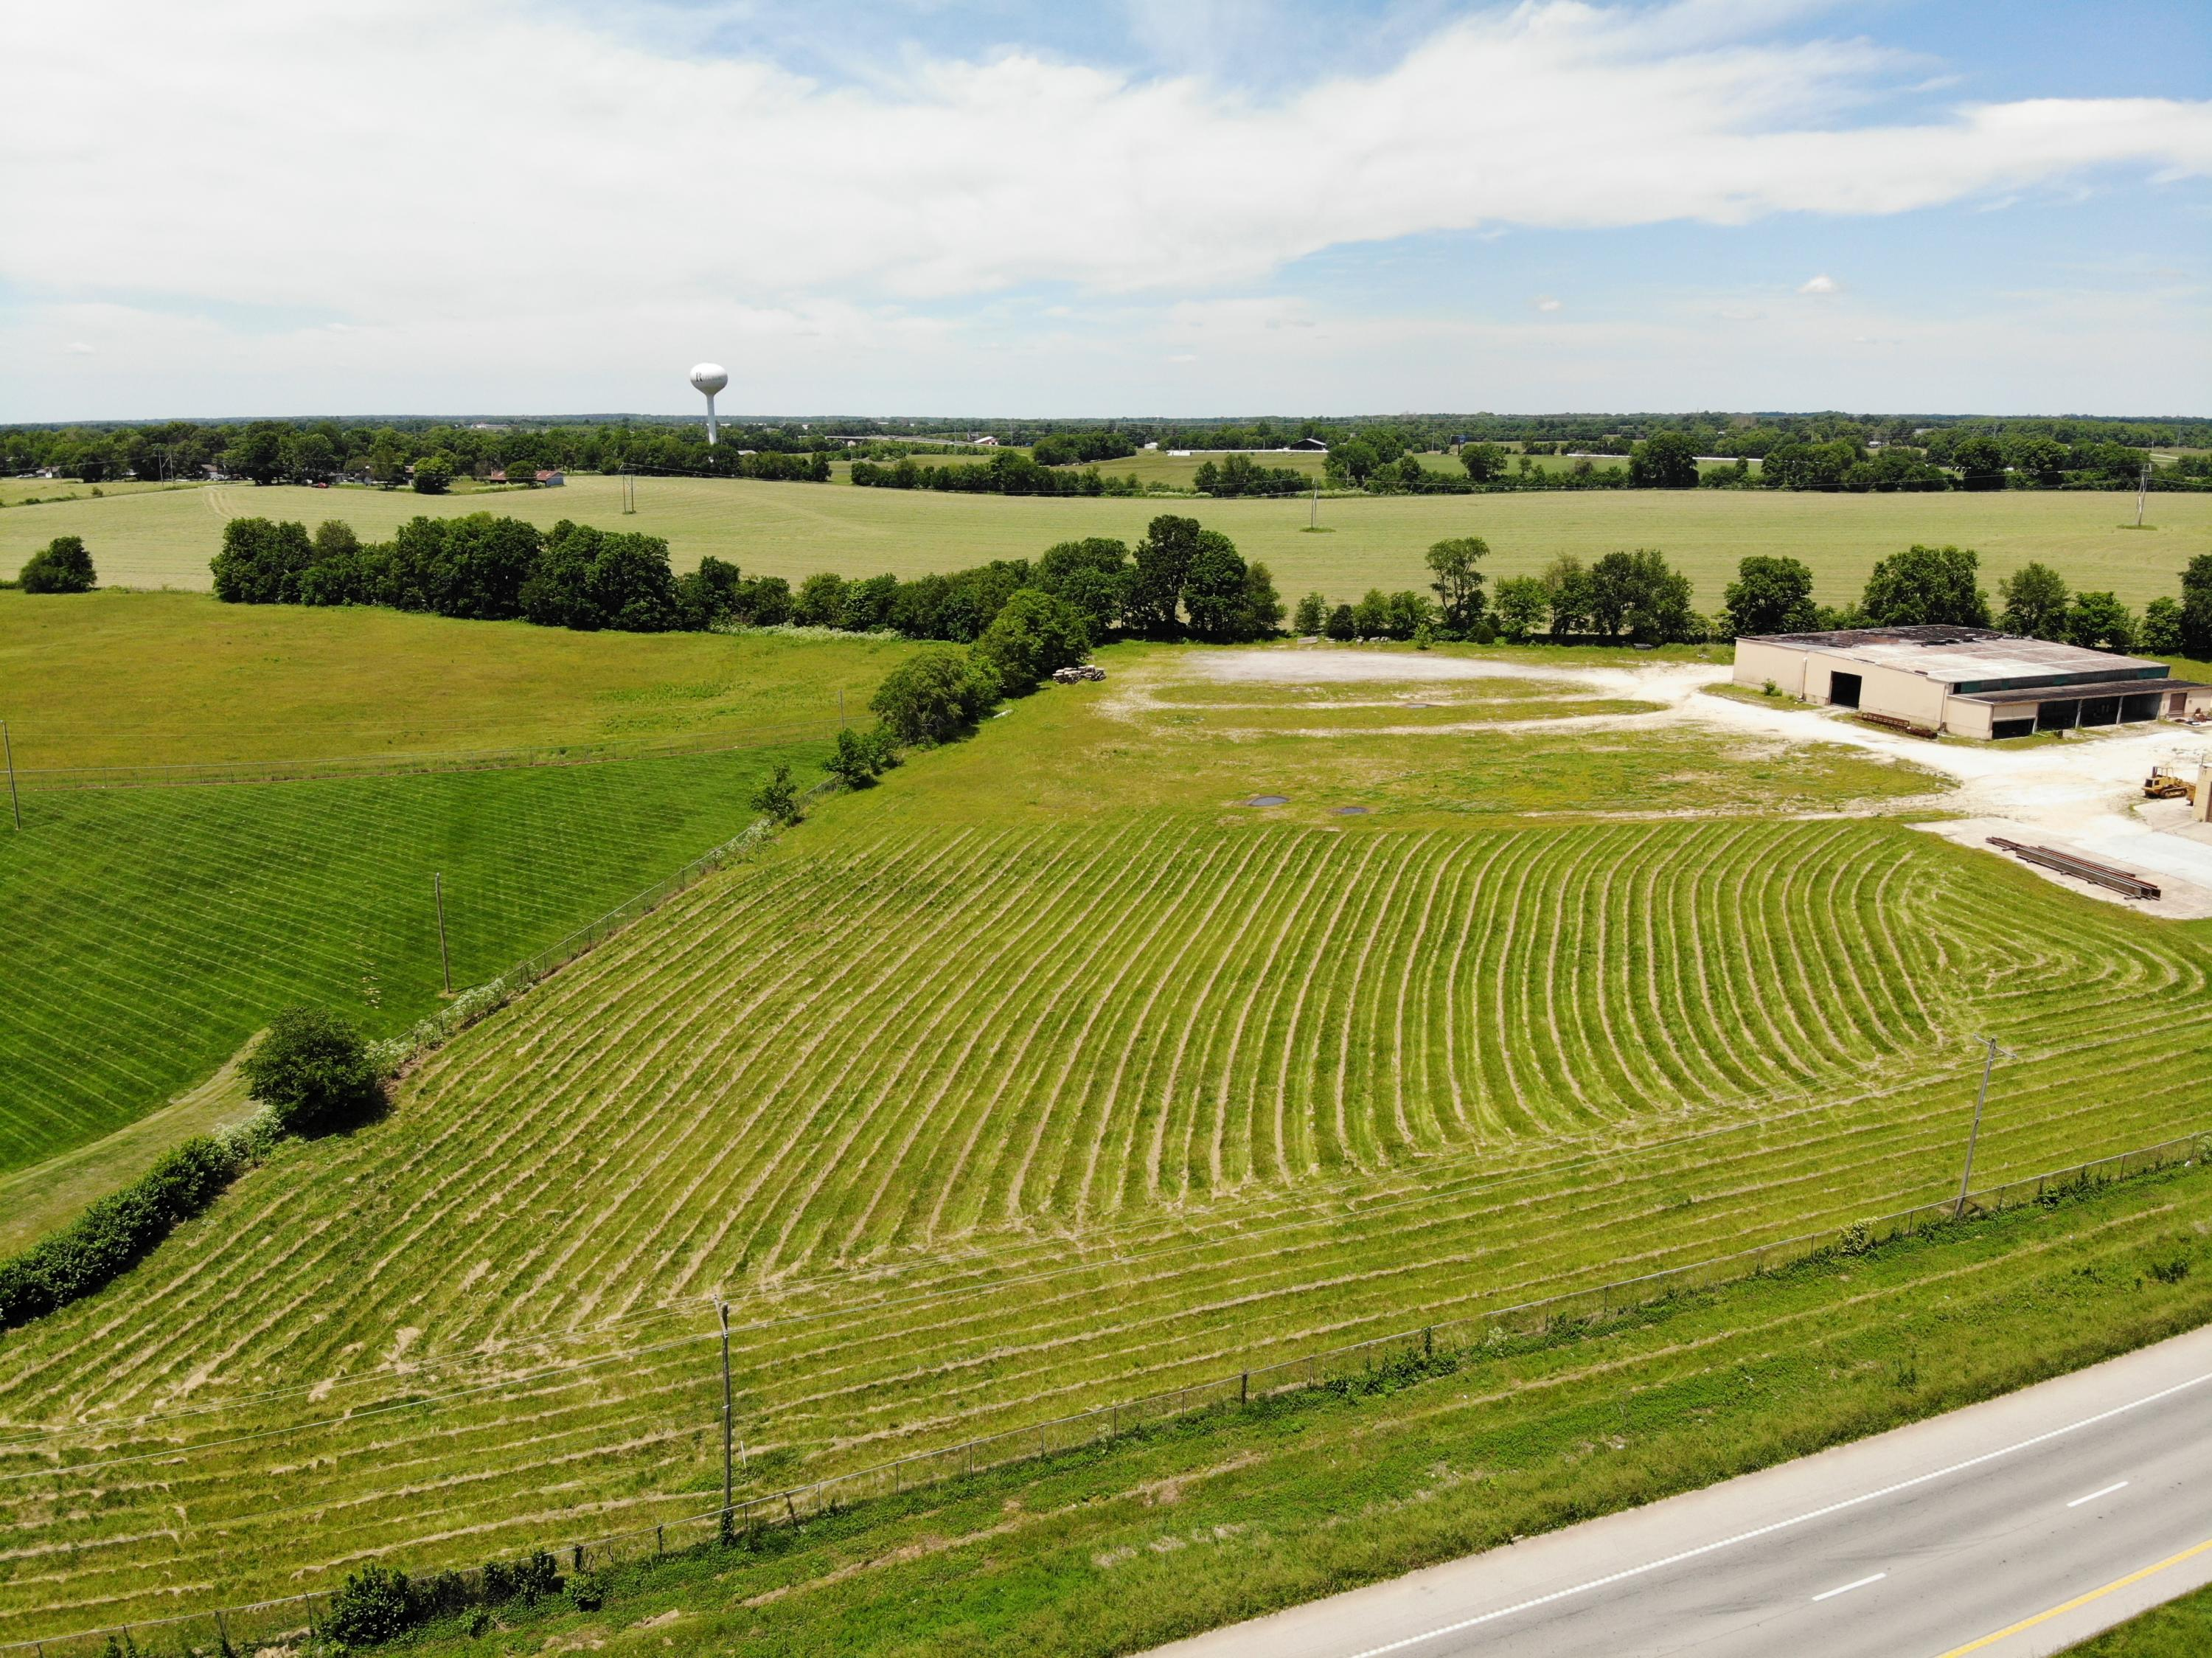 6021 West Us Hwy 60 UNIT Tract 3 Republic, MO 65738